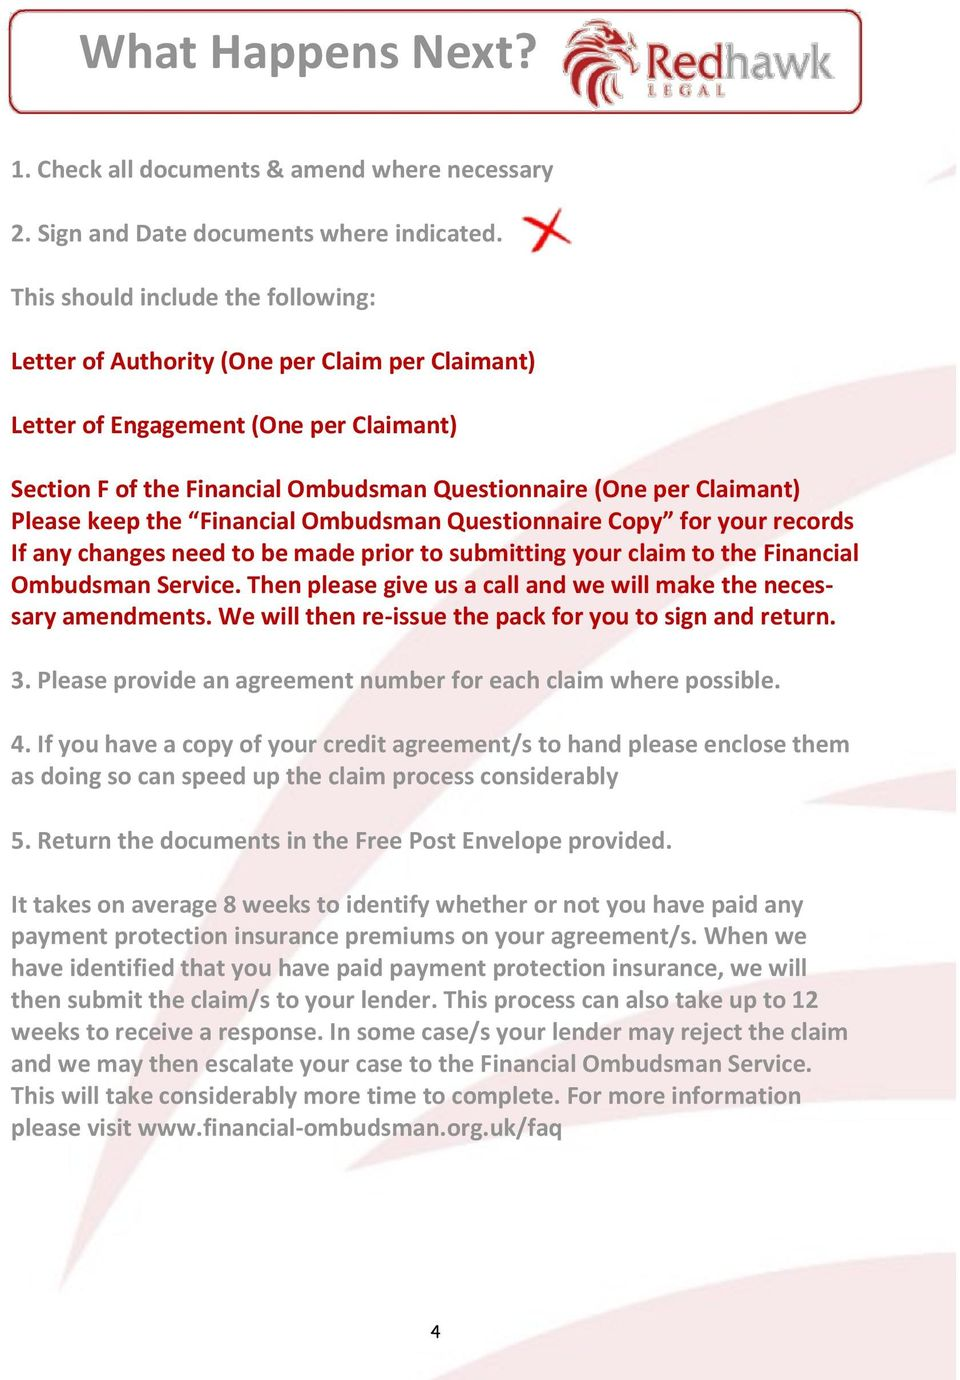 Please keep the Financial Ombudsman Questionnaire Copy for your records If any changes need to be made prior to submitting your claim to the Financial Ombudsman Service.